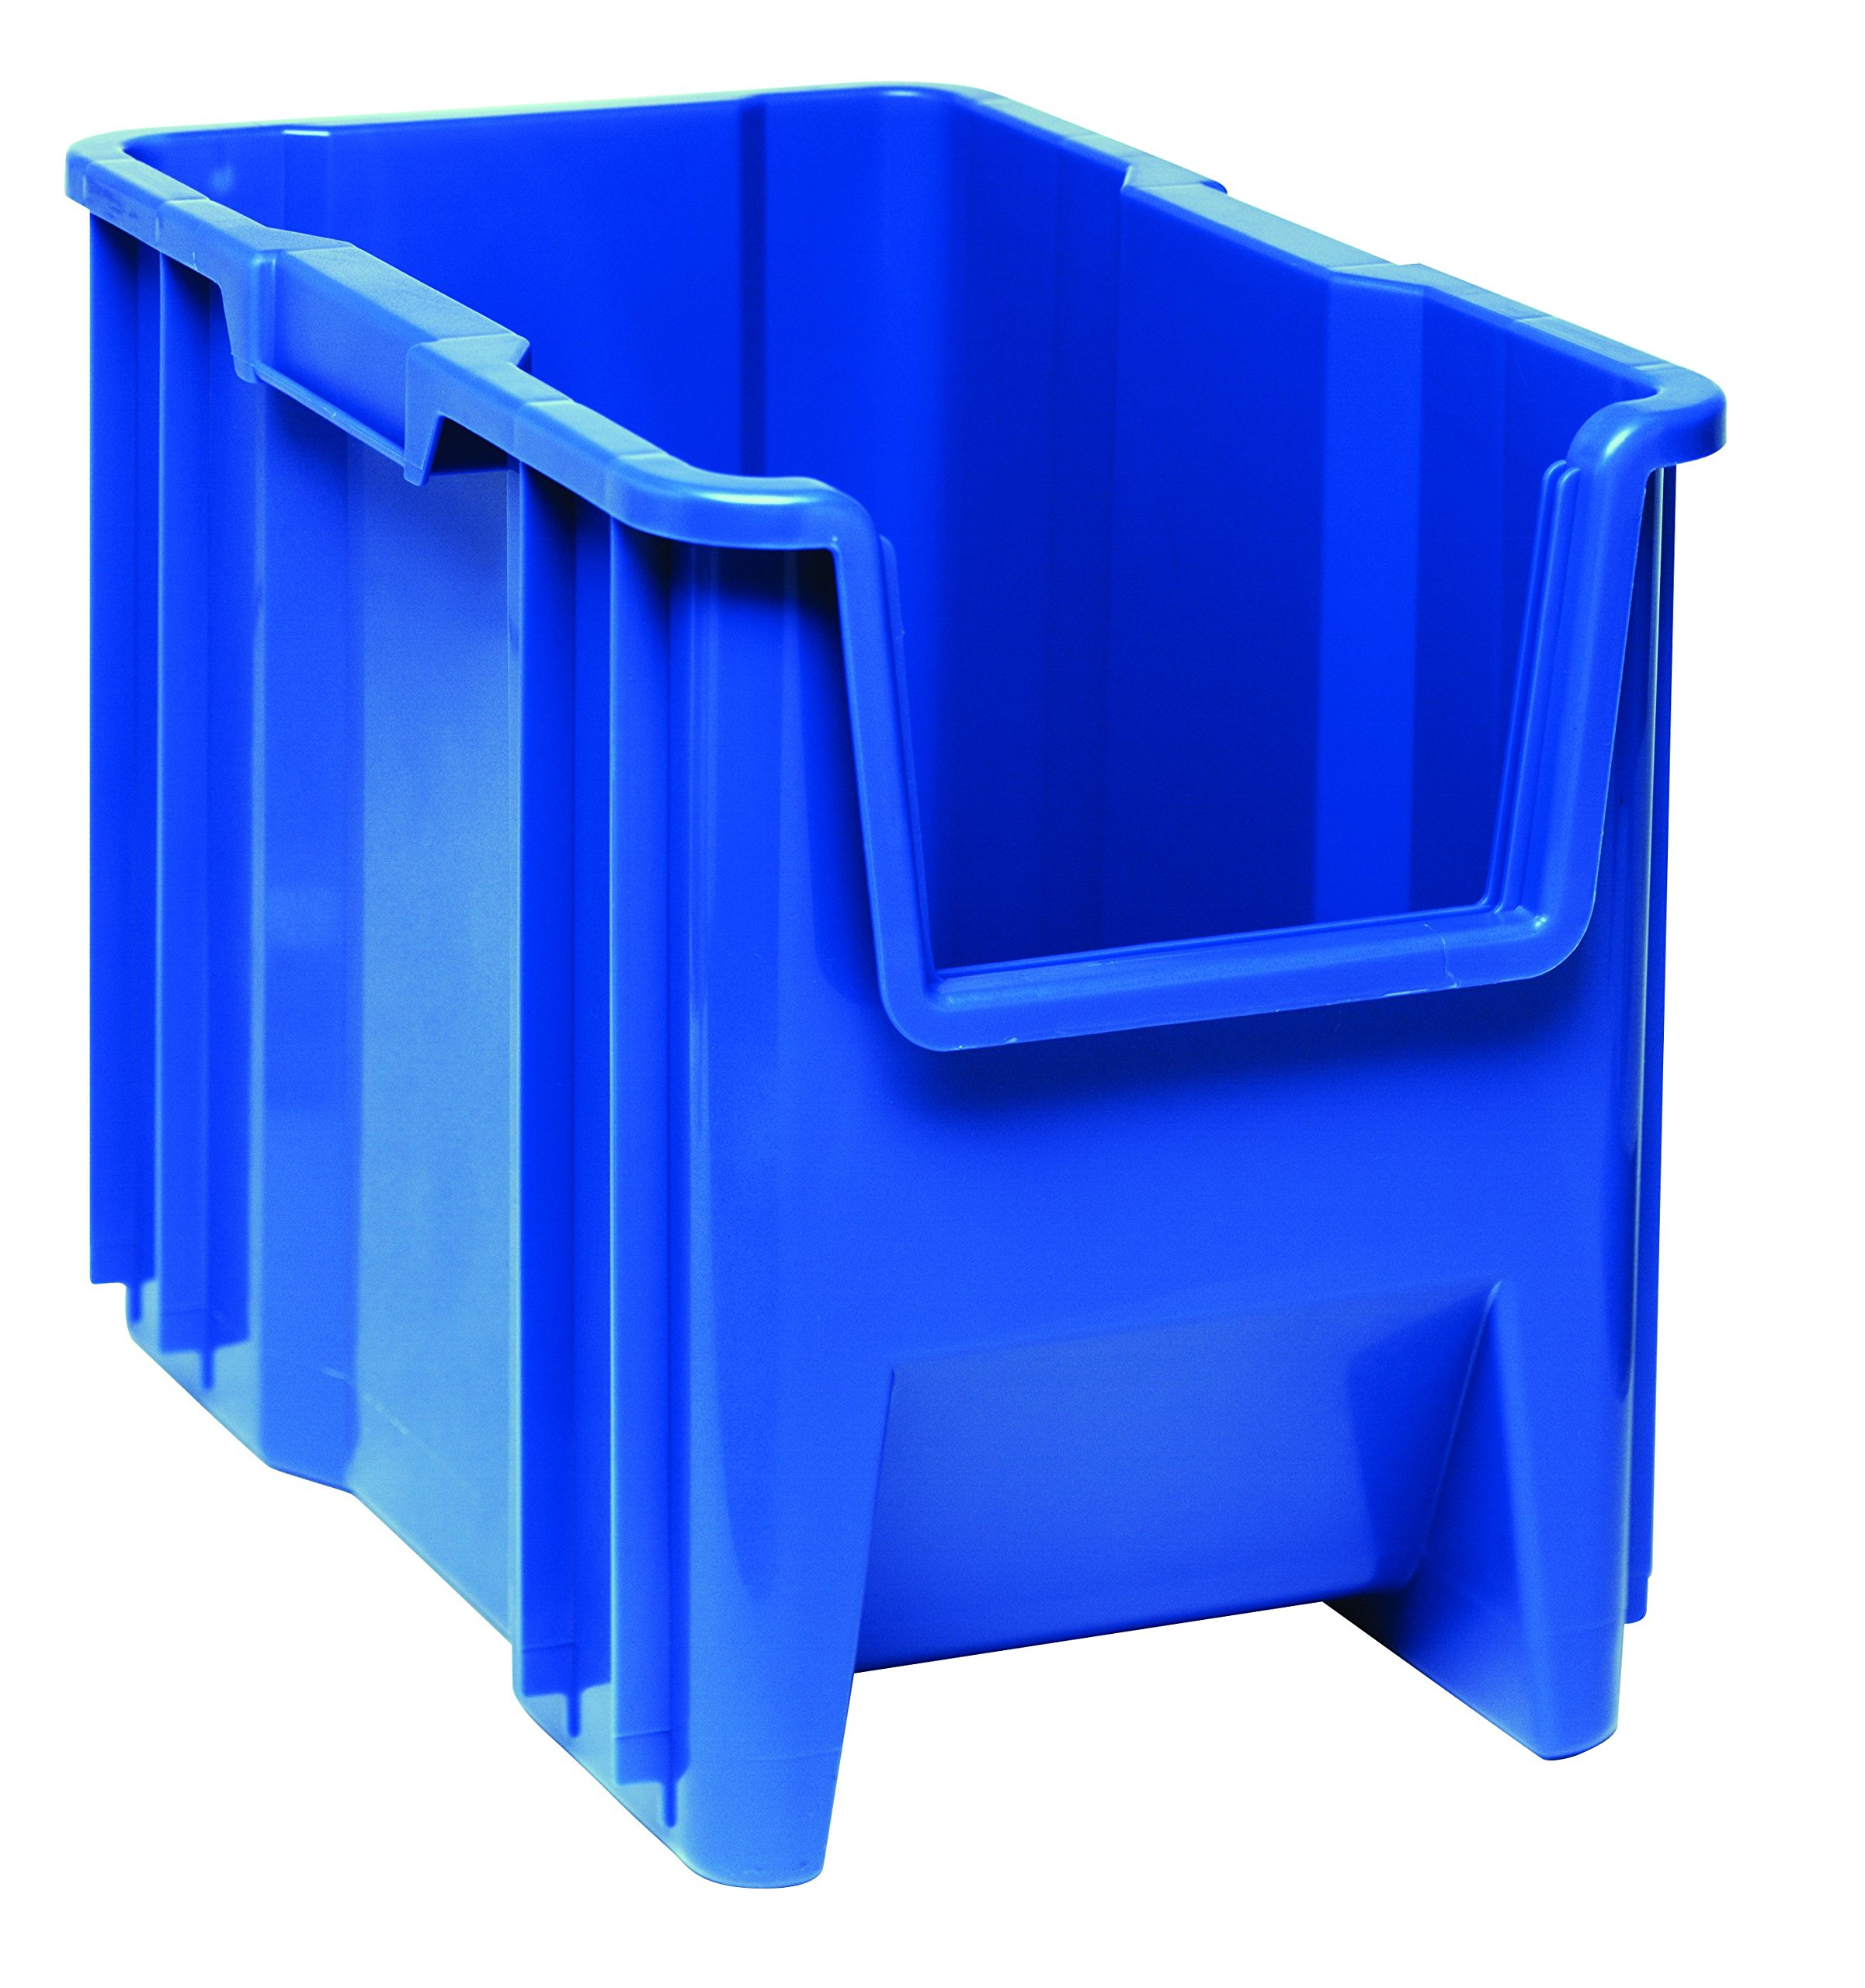 Quantum Storage Systems QGH600BL Multi-Purpose Giant Stacking Open Hopper Container, 17-1/2'' x 10-7/8'' x 12-1/2'', Blue (Pack of 4)